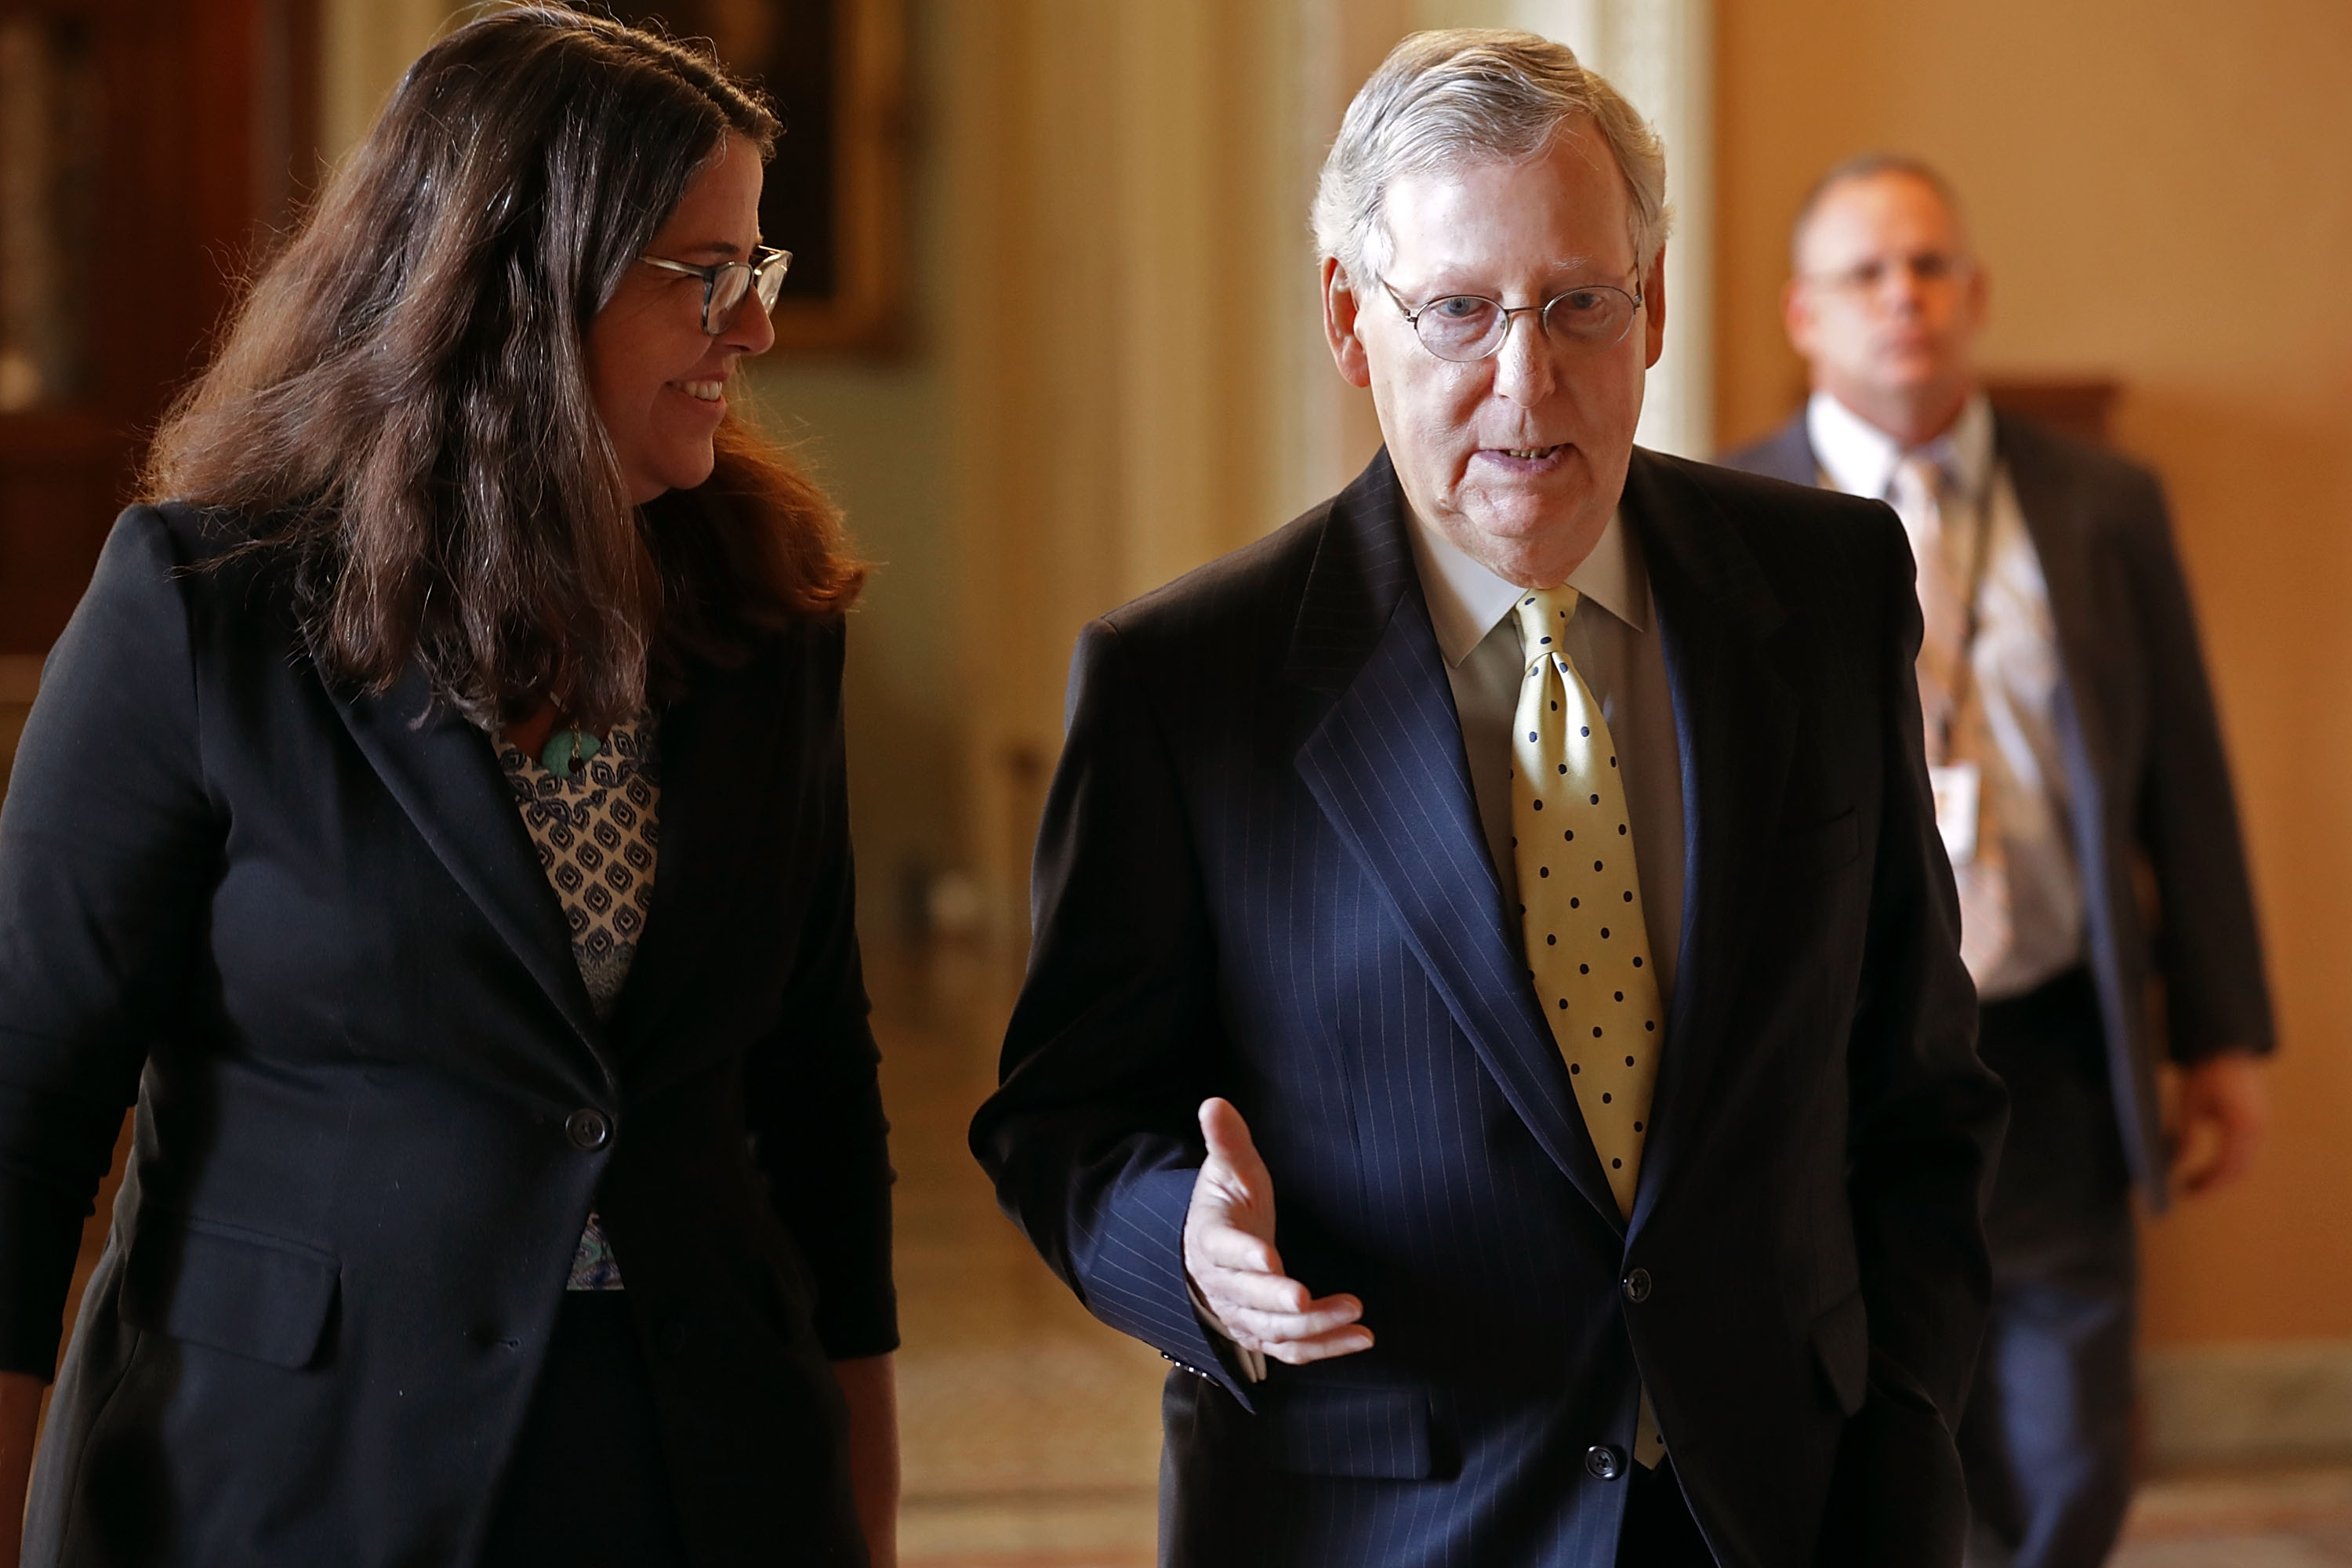 Congress Returns To Session After Summer Recess